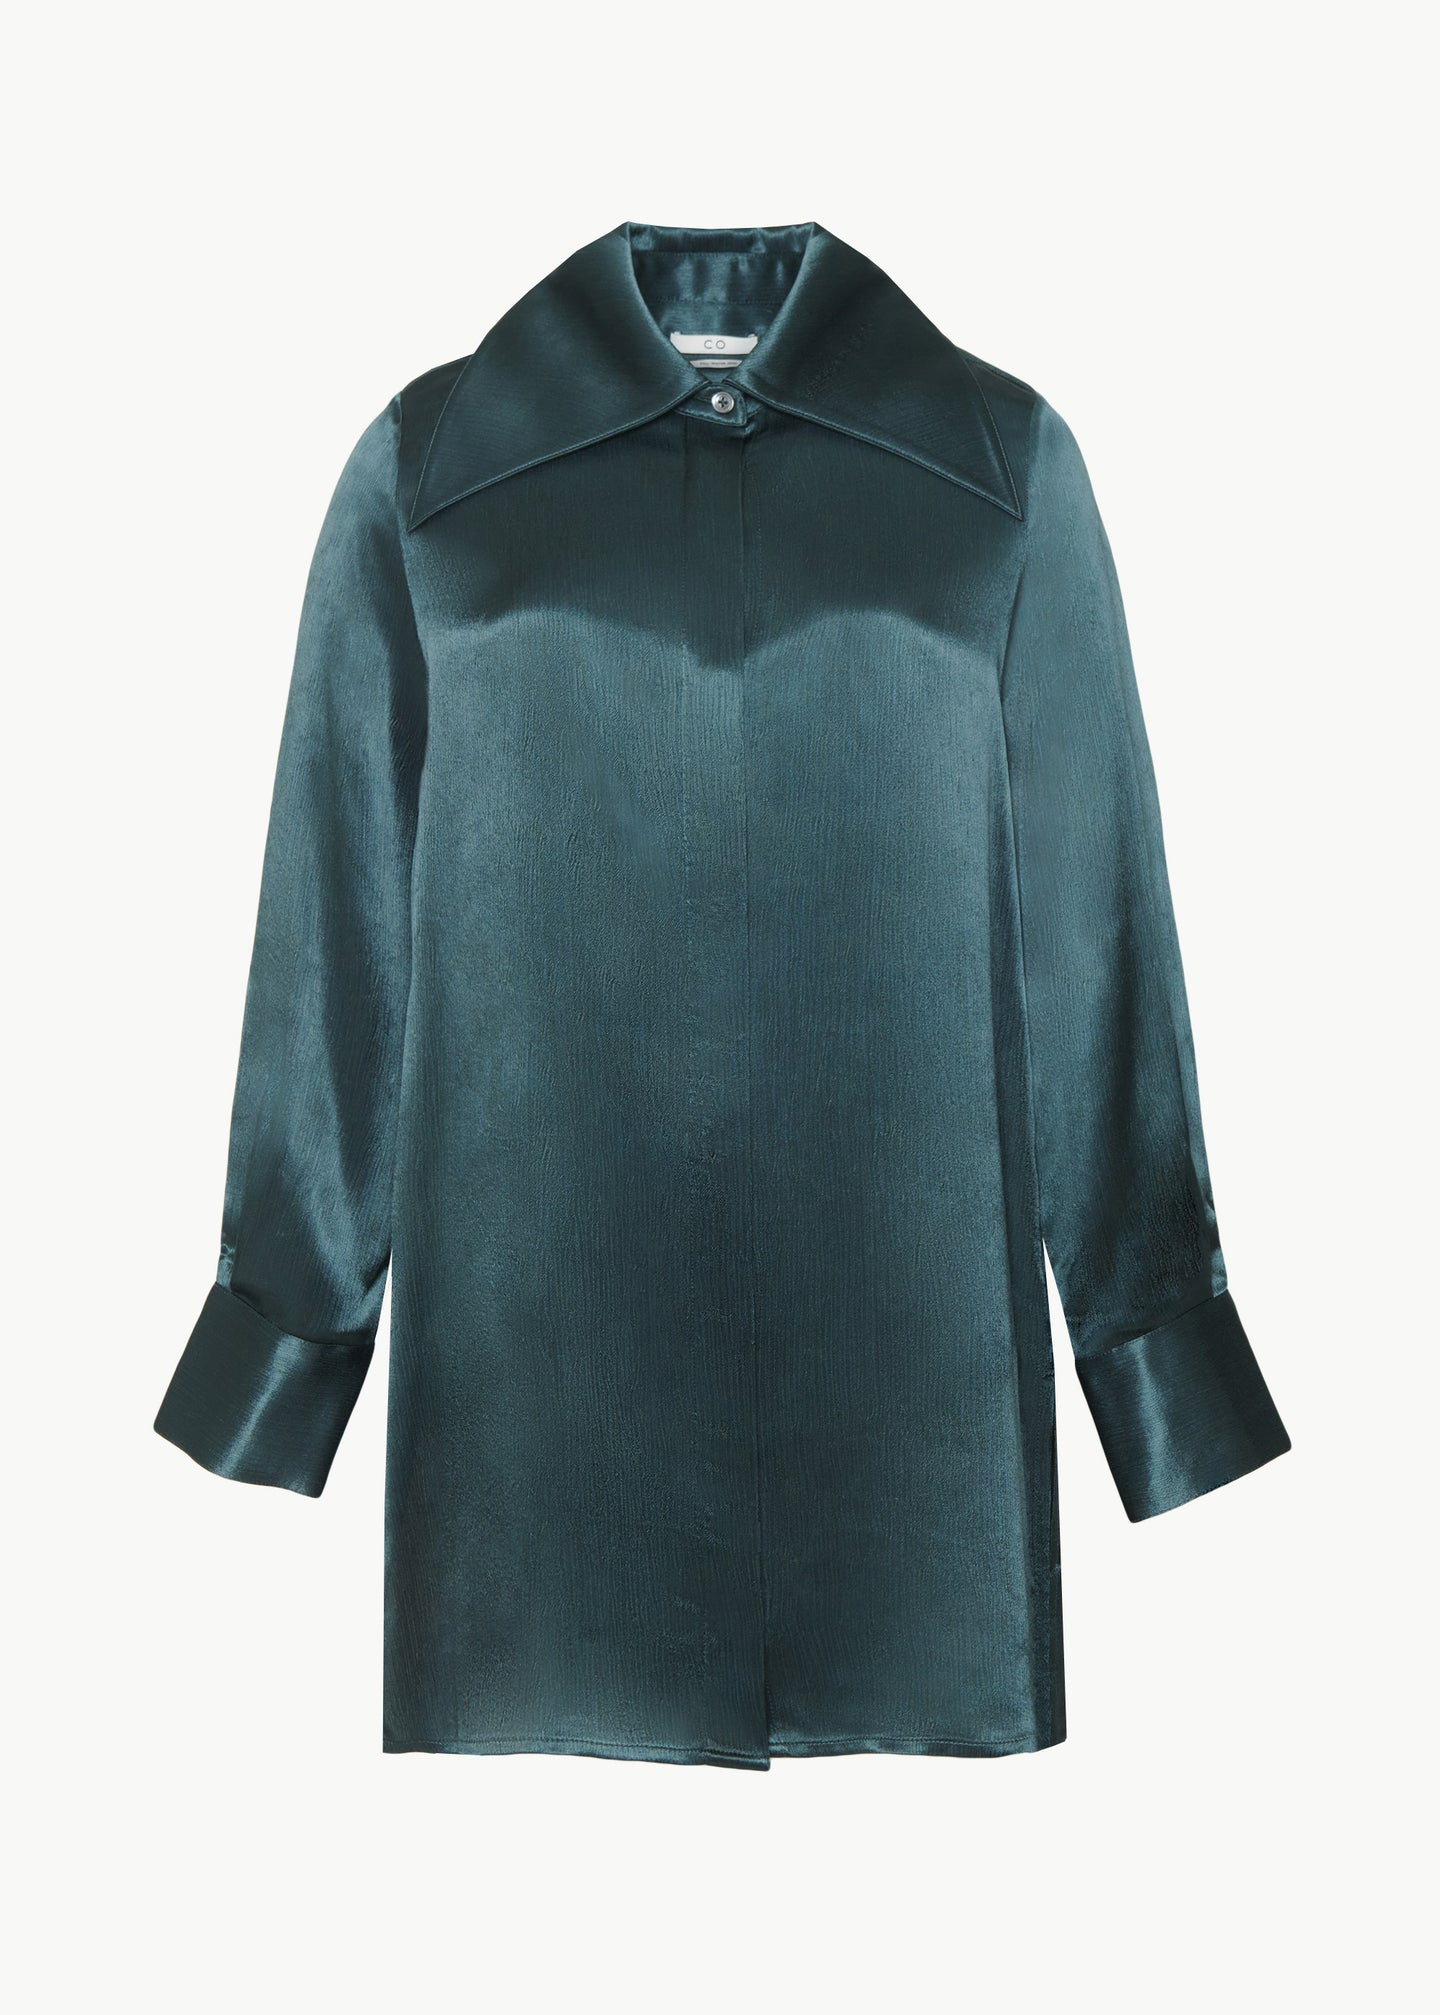 Button Down Blouse in Crinkle Viscose - Teal - CO